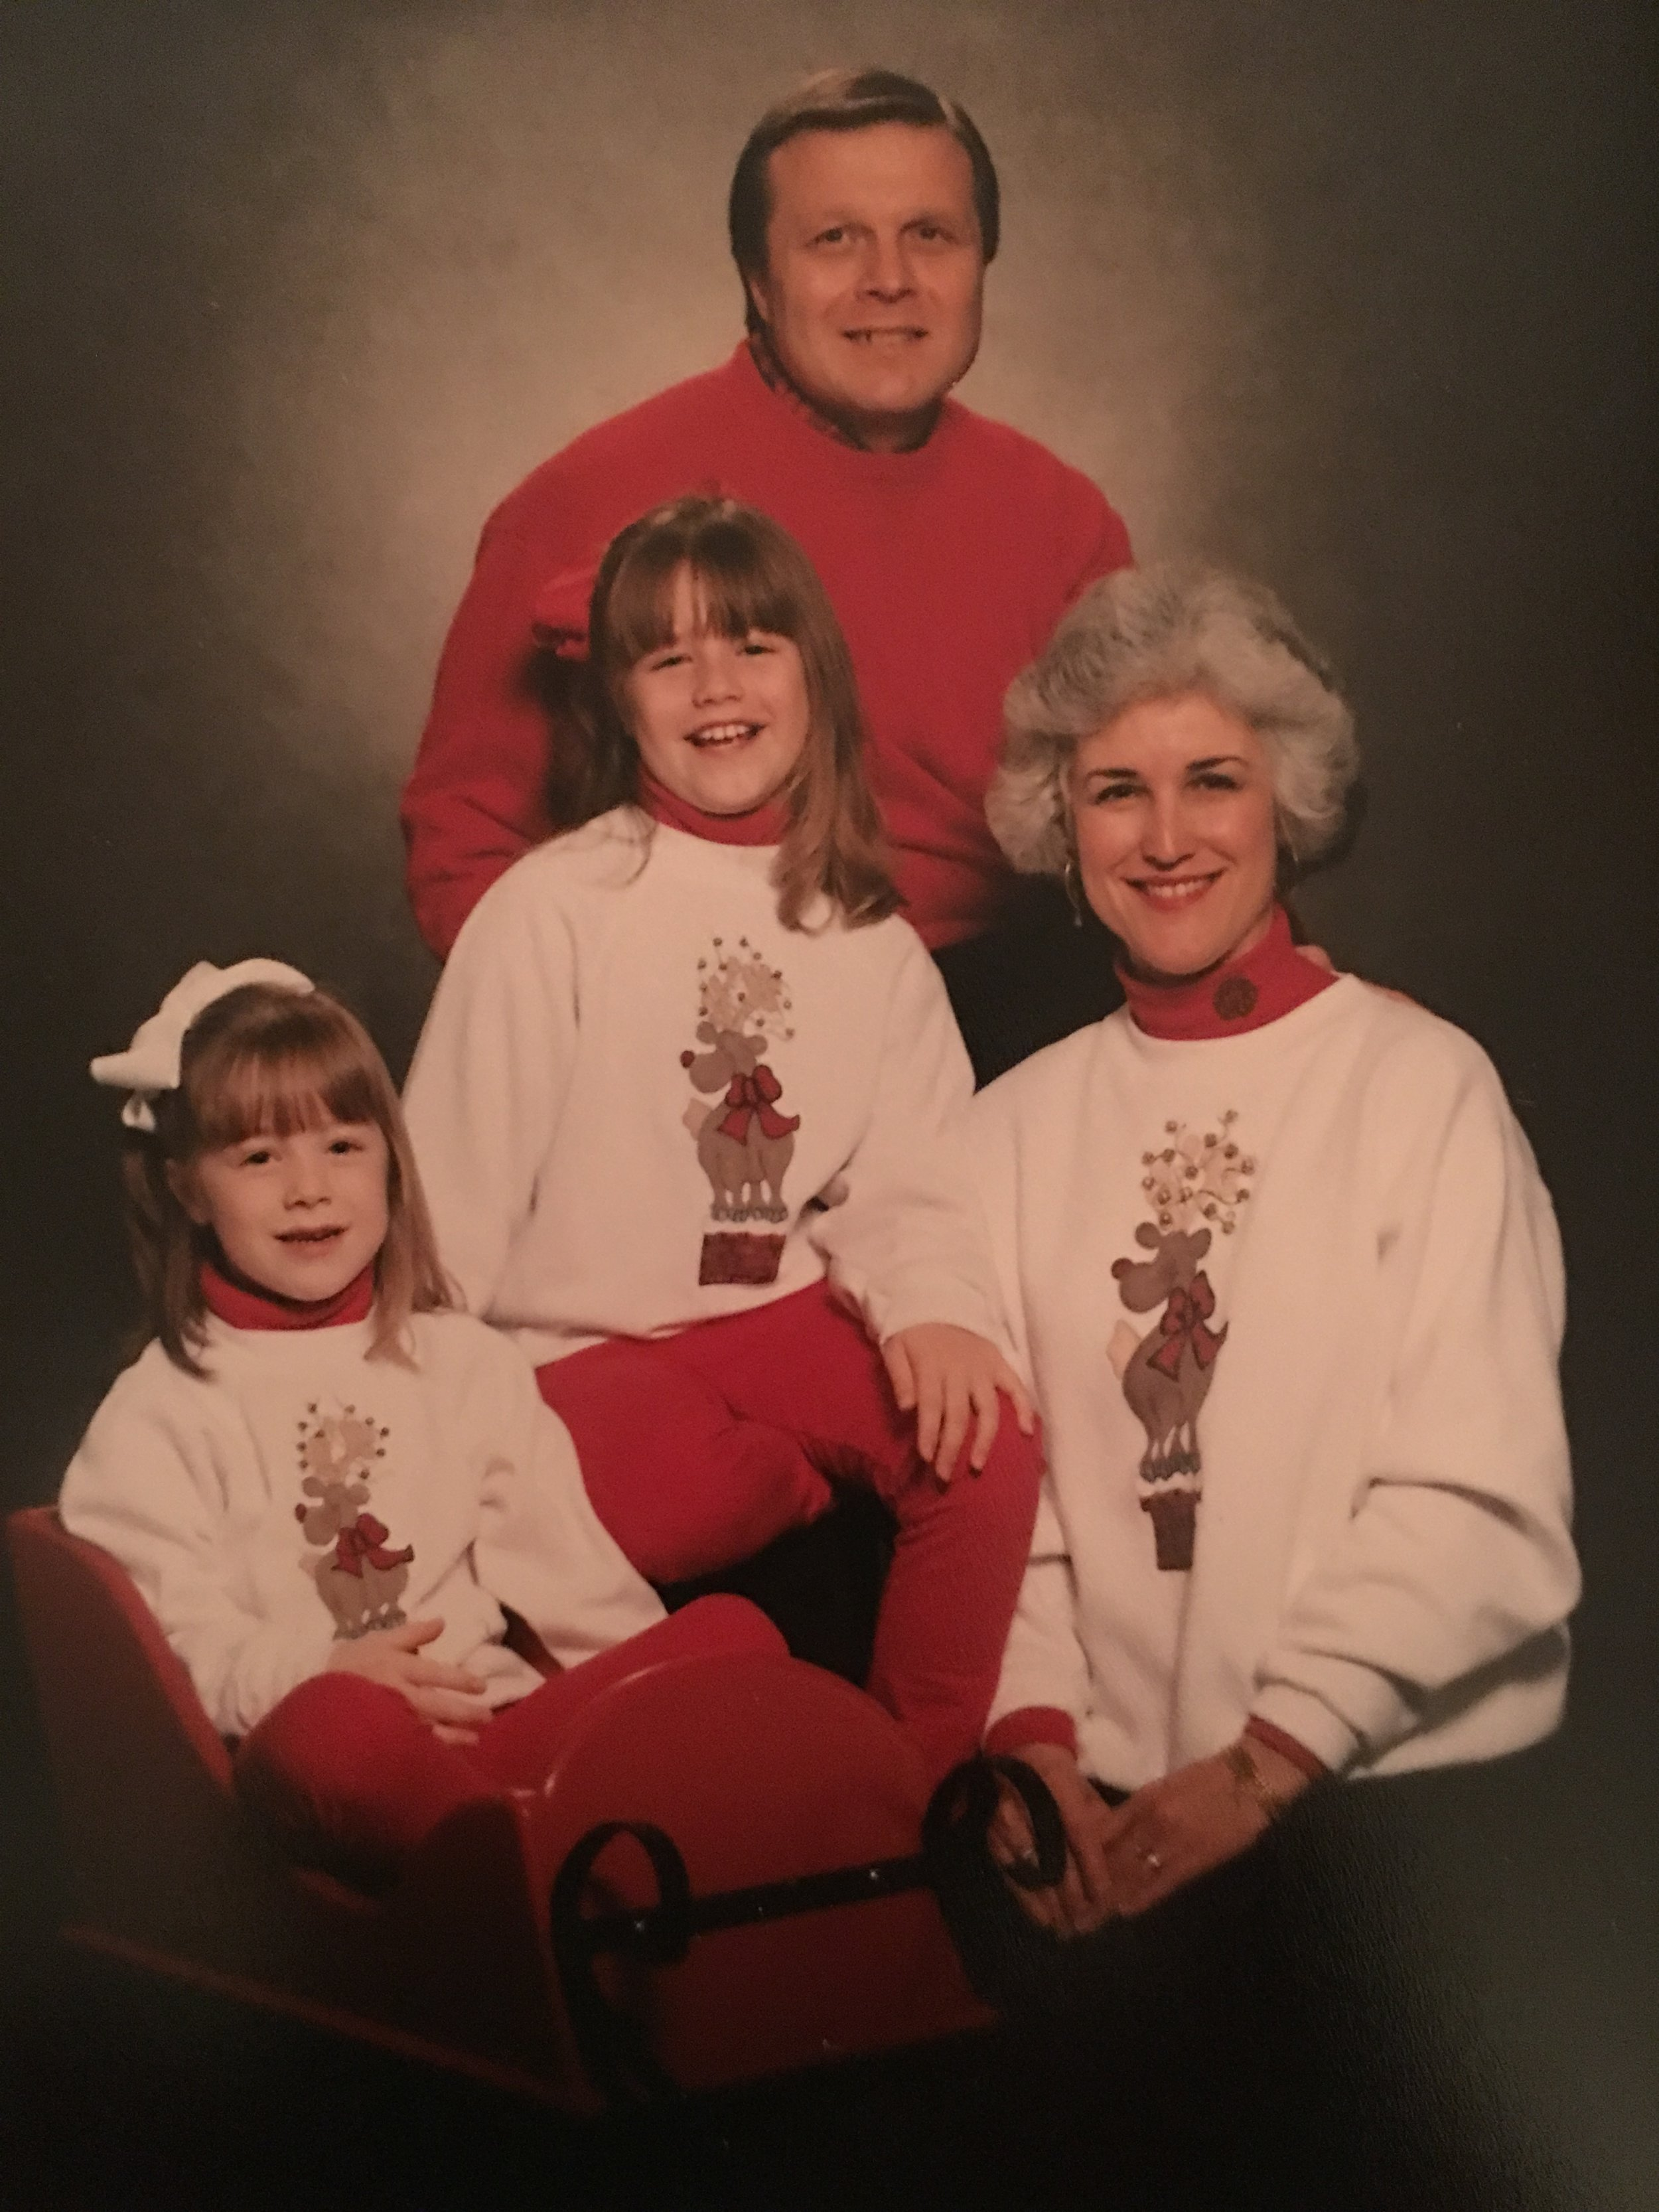 And, of course, the family Christmas photo required hand-painted reindeer sweatshirts. This was also post my first perm.